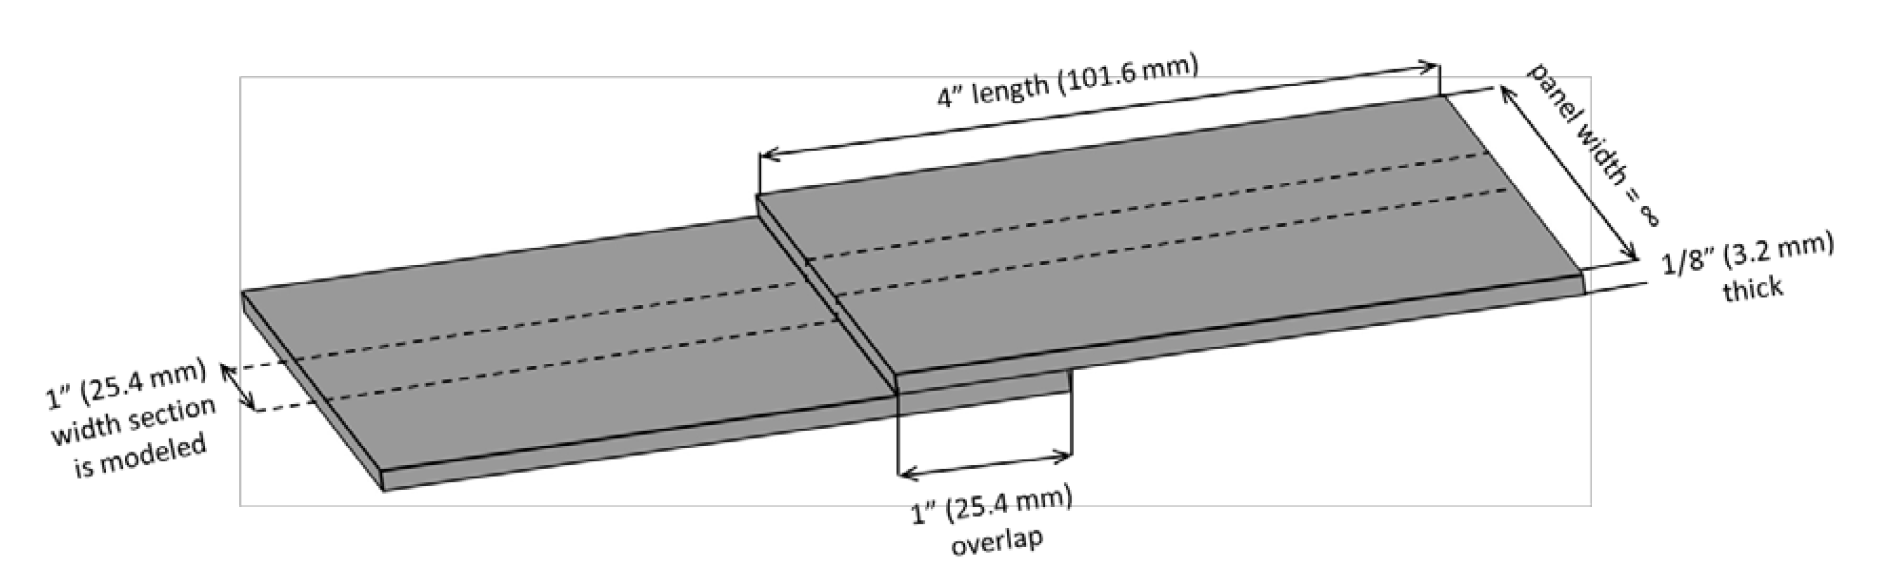 Fluxtrol - Induction Process and Coil Design for Welding of Carbon Fiber Reinforced Thermoplastics - Figure 1: Dimensions of test specimen used in FEA.